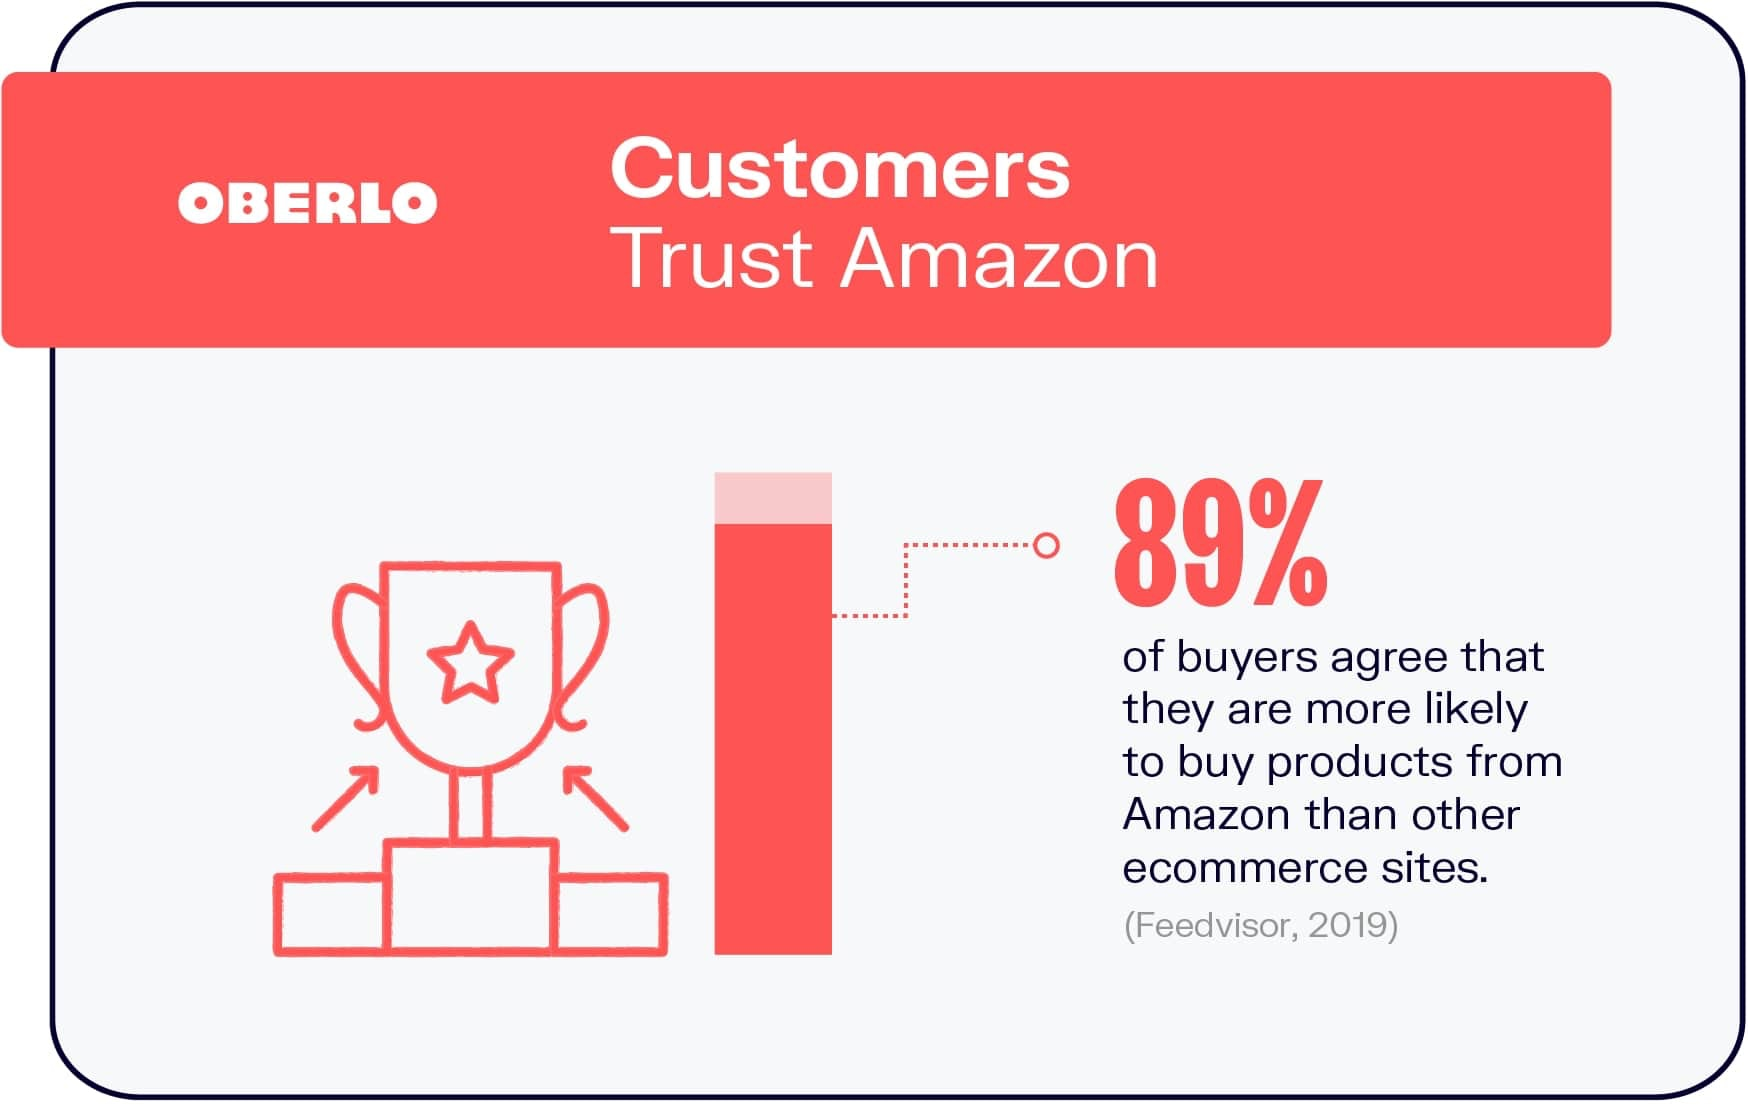 Customers Trust Amazon